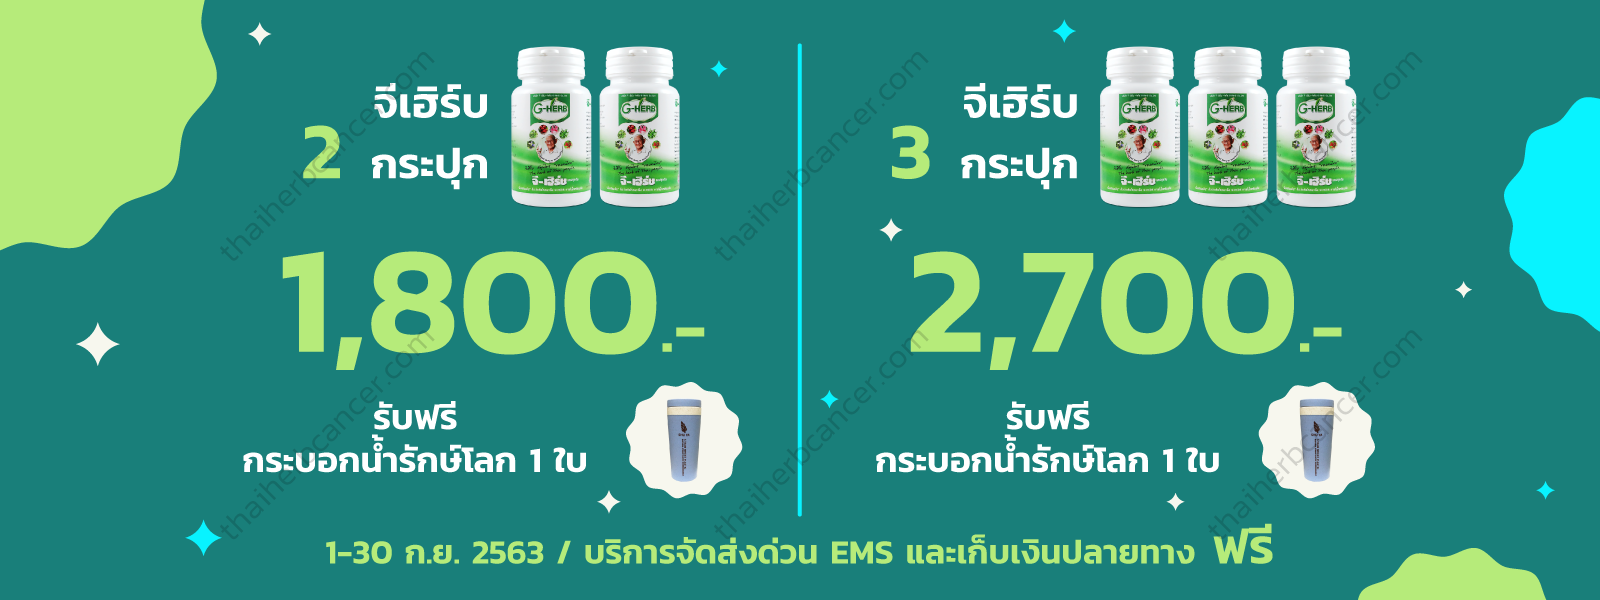 thaiherbcancer-Promotion-Sep.-2020